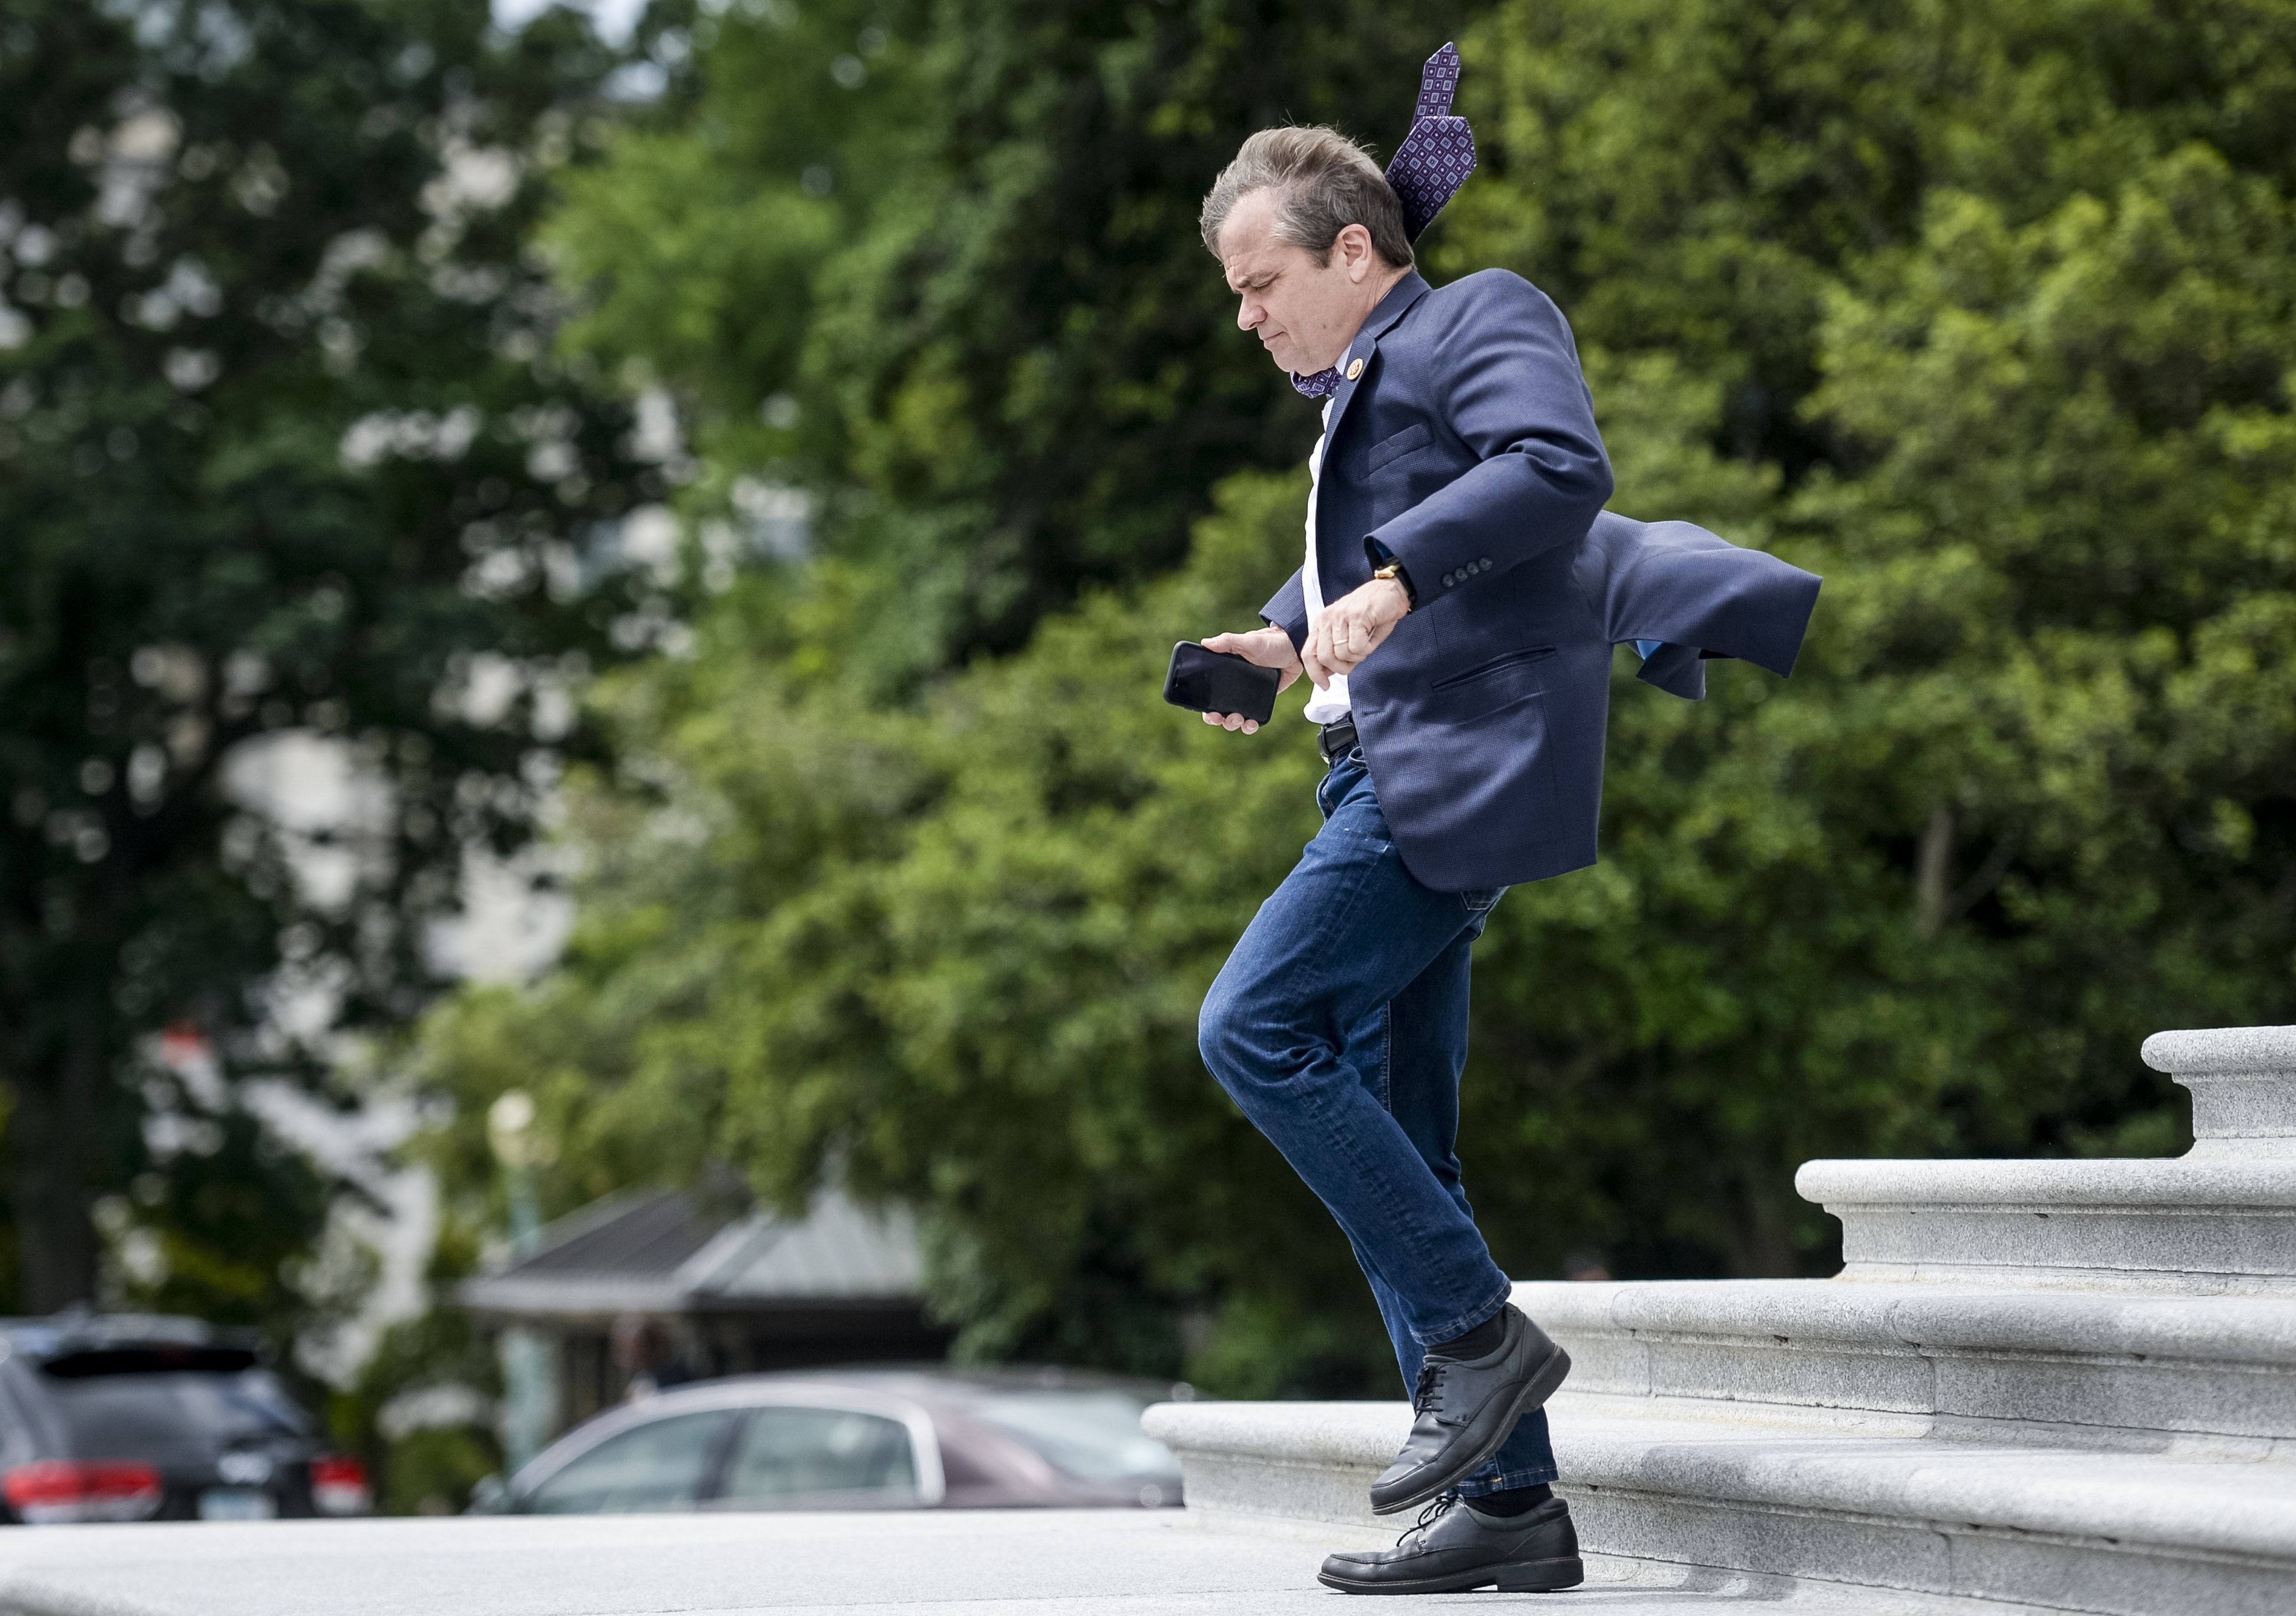 UNITED STATES - JUNE 21: Rep. Mike Quigley, D-Ill., talks to reporters as he leaves the Capitol after the last votes of the week in the House in Washington on Friday June 21, 2019. (Photo by Caroline Brehman/CQ Roll Call) Quigley